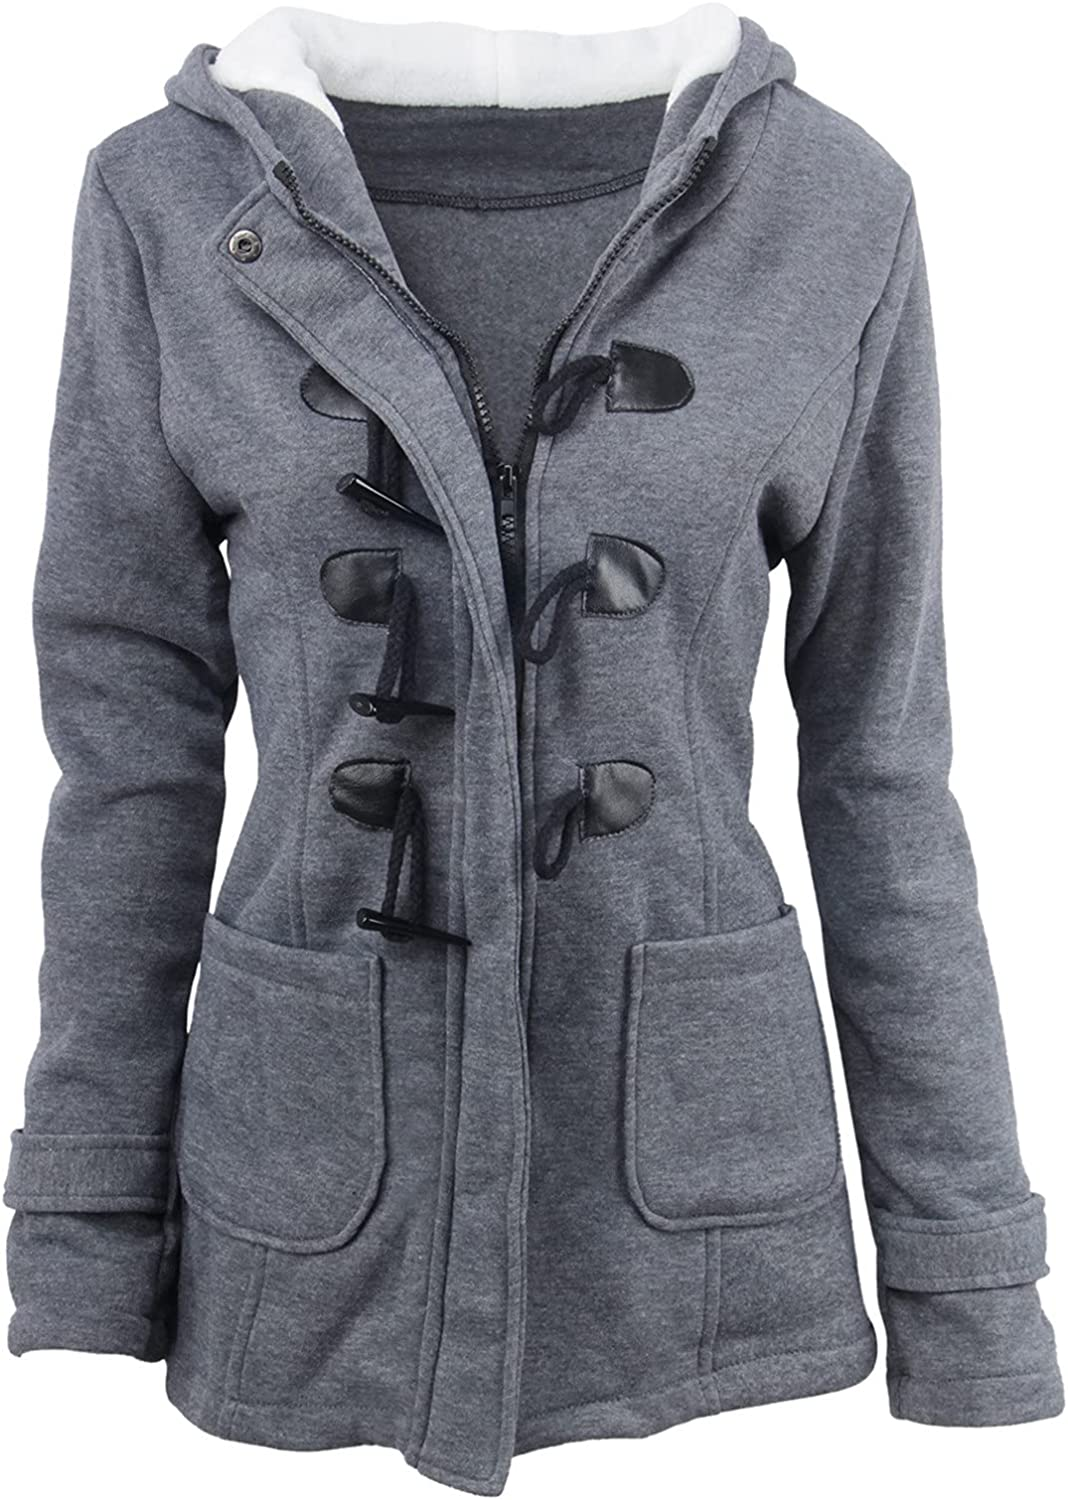 Winter Coats for Women Patchwork Solid Long Jackets Plus Size Zip Hooded Long Sleeve Tunics Outerwear